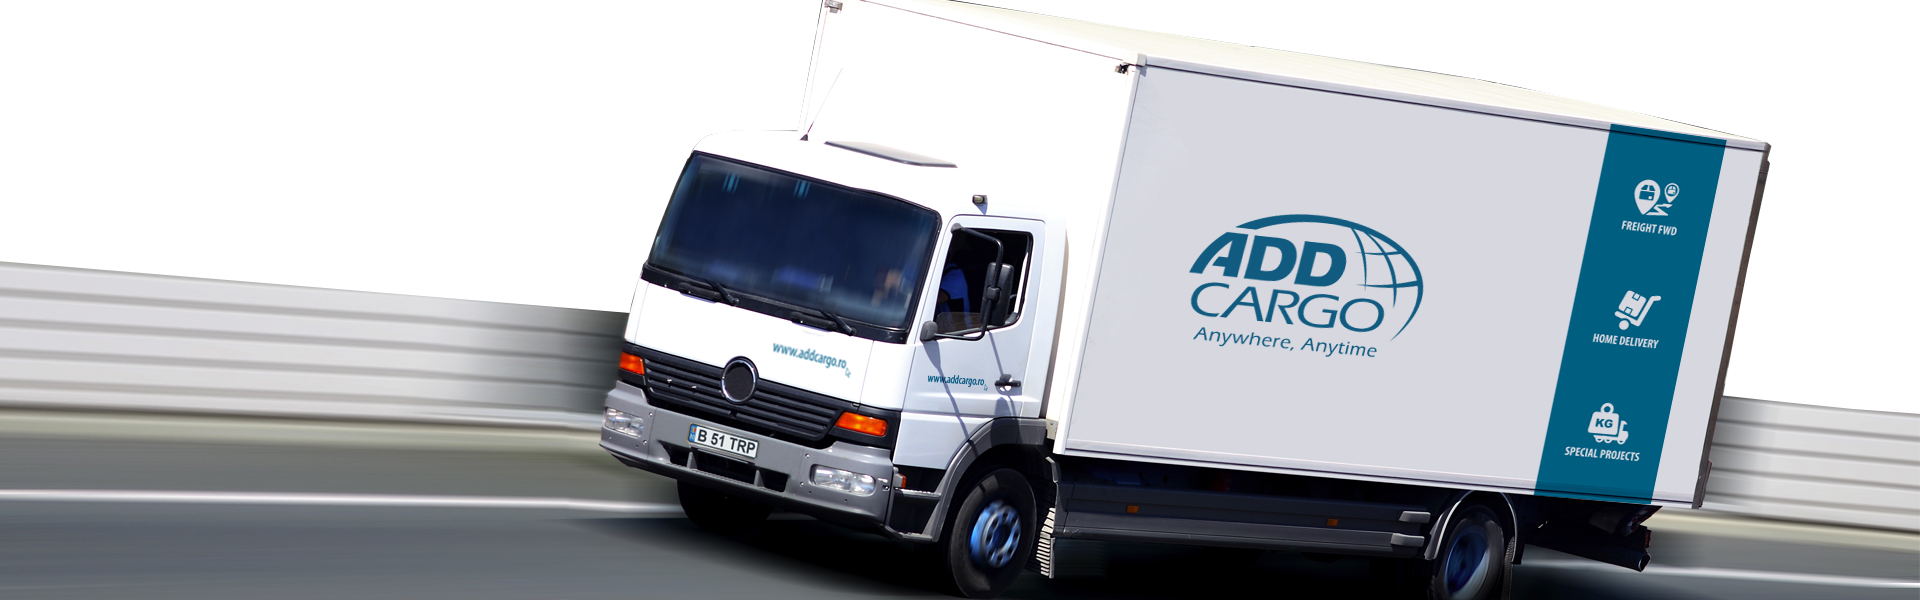 camion2-banner-home-cu-r